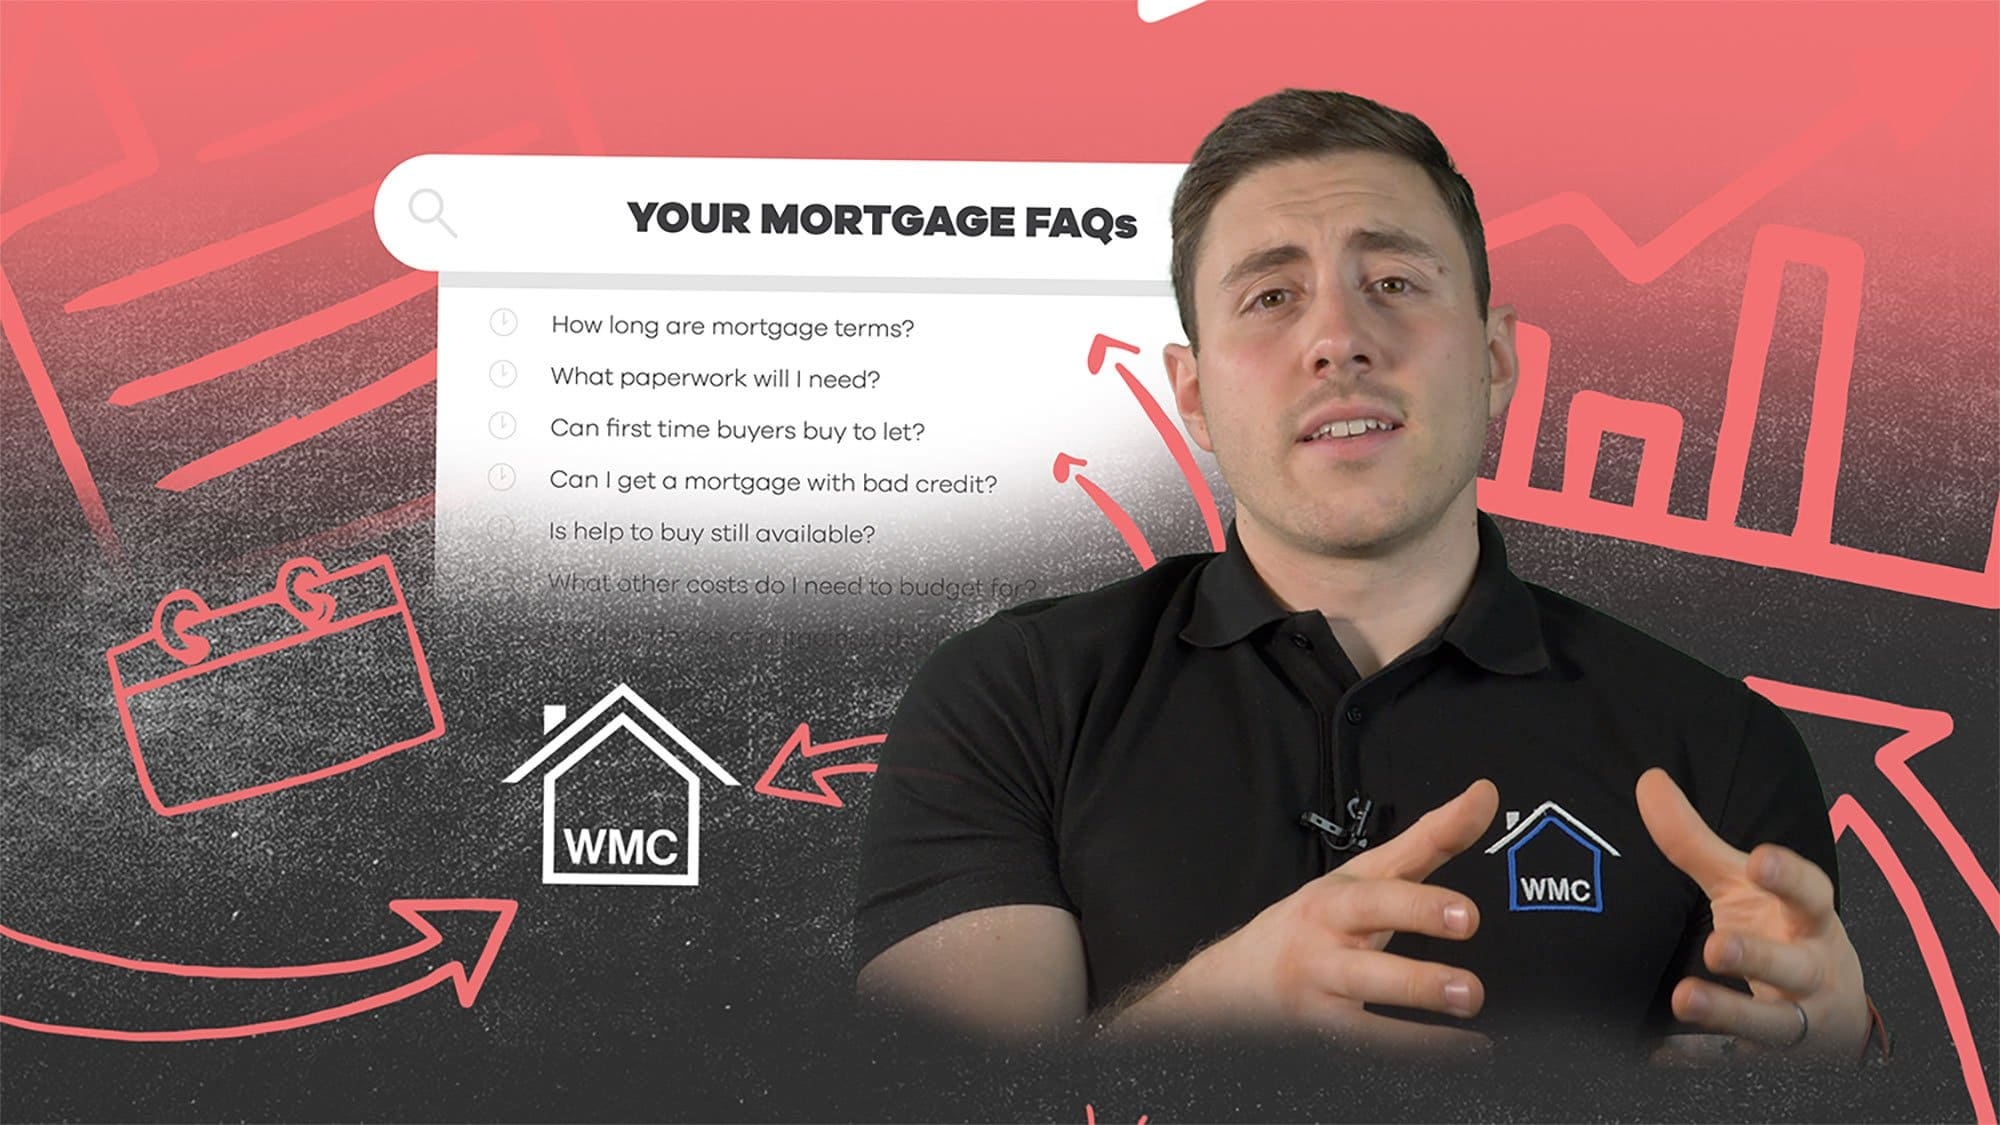 Mortgages: How long are mortgage terms?